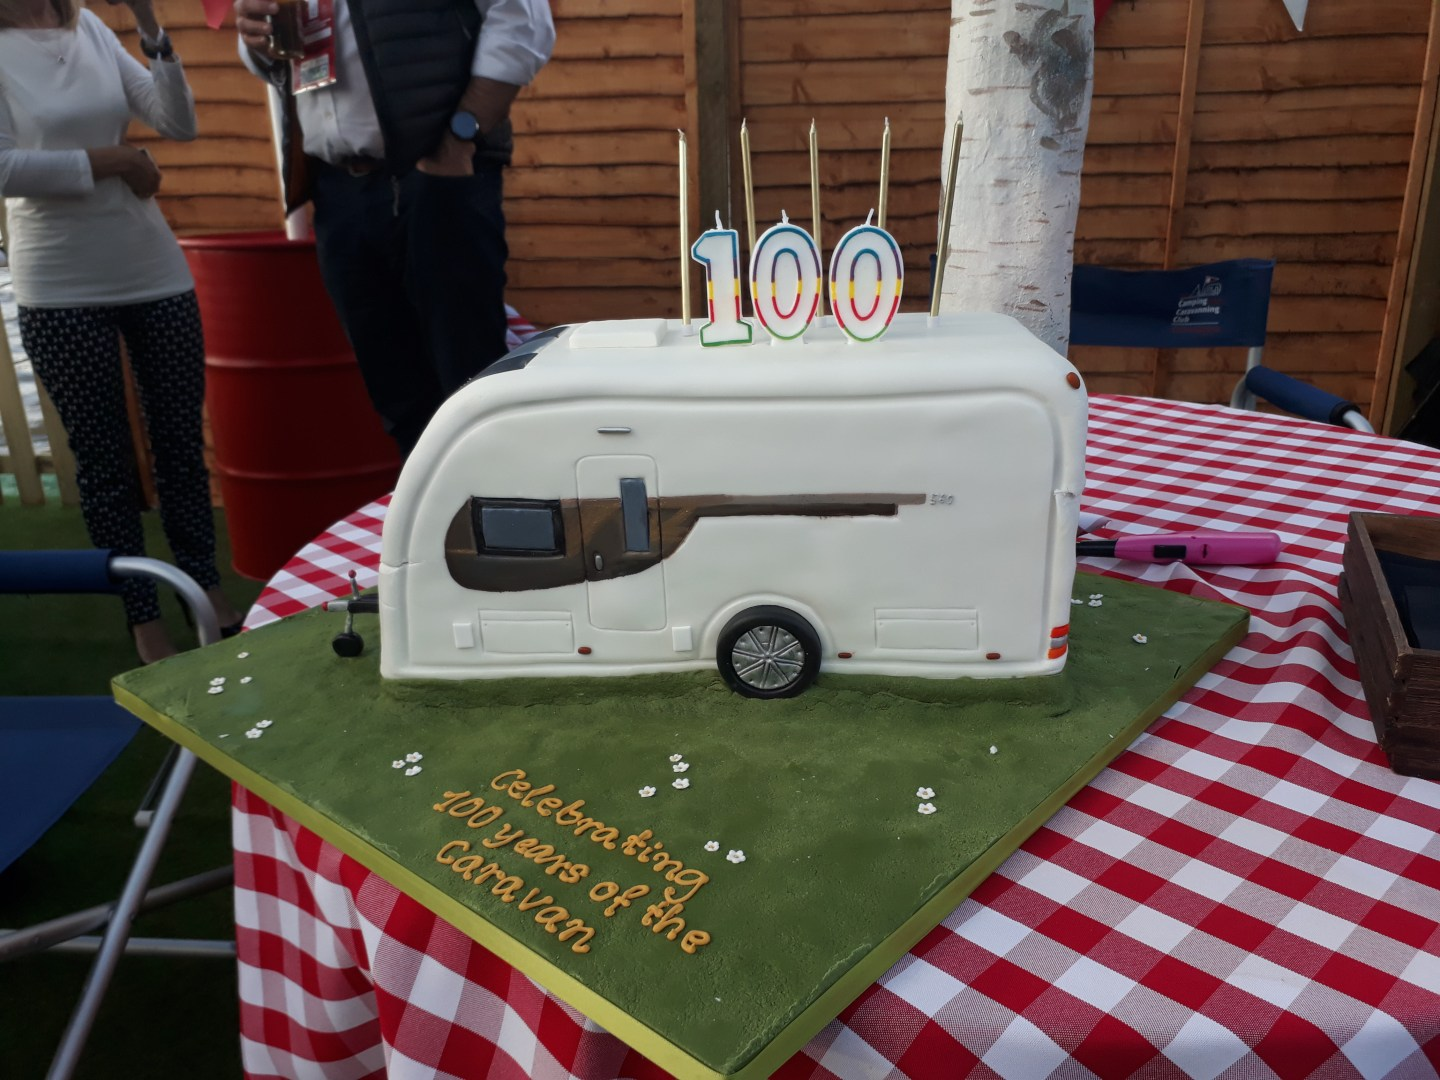 National Camping and Caravanning Week caravan cake celebrating its 100th birthday